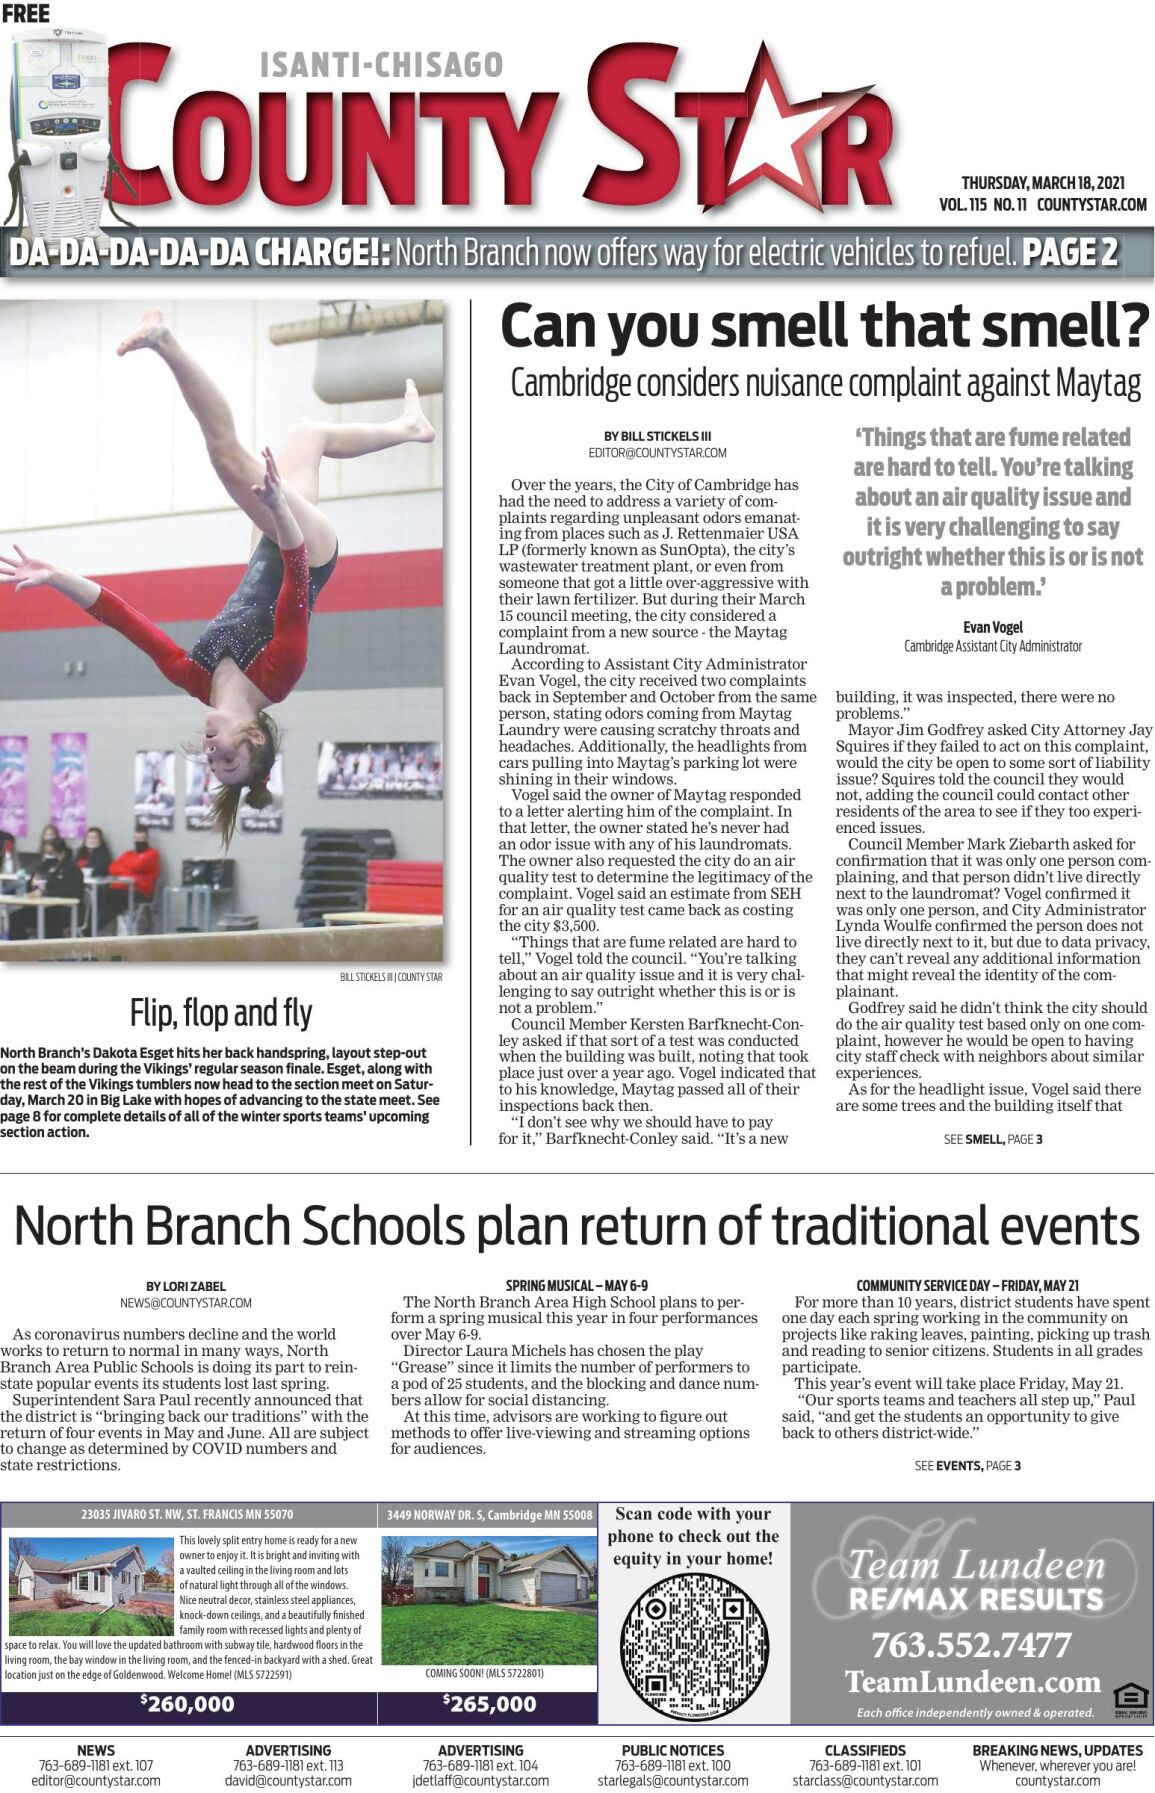 Isanti-Chisago County Star March 18, 2021 e-edition